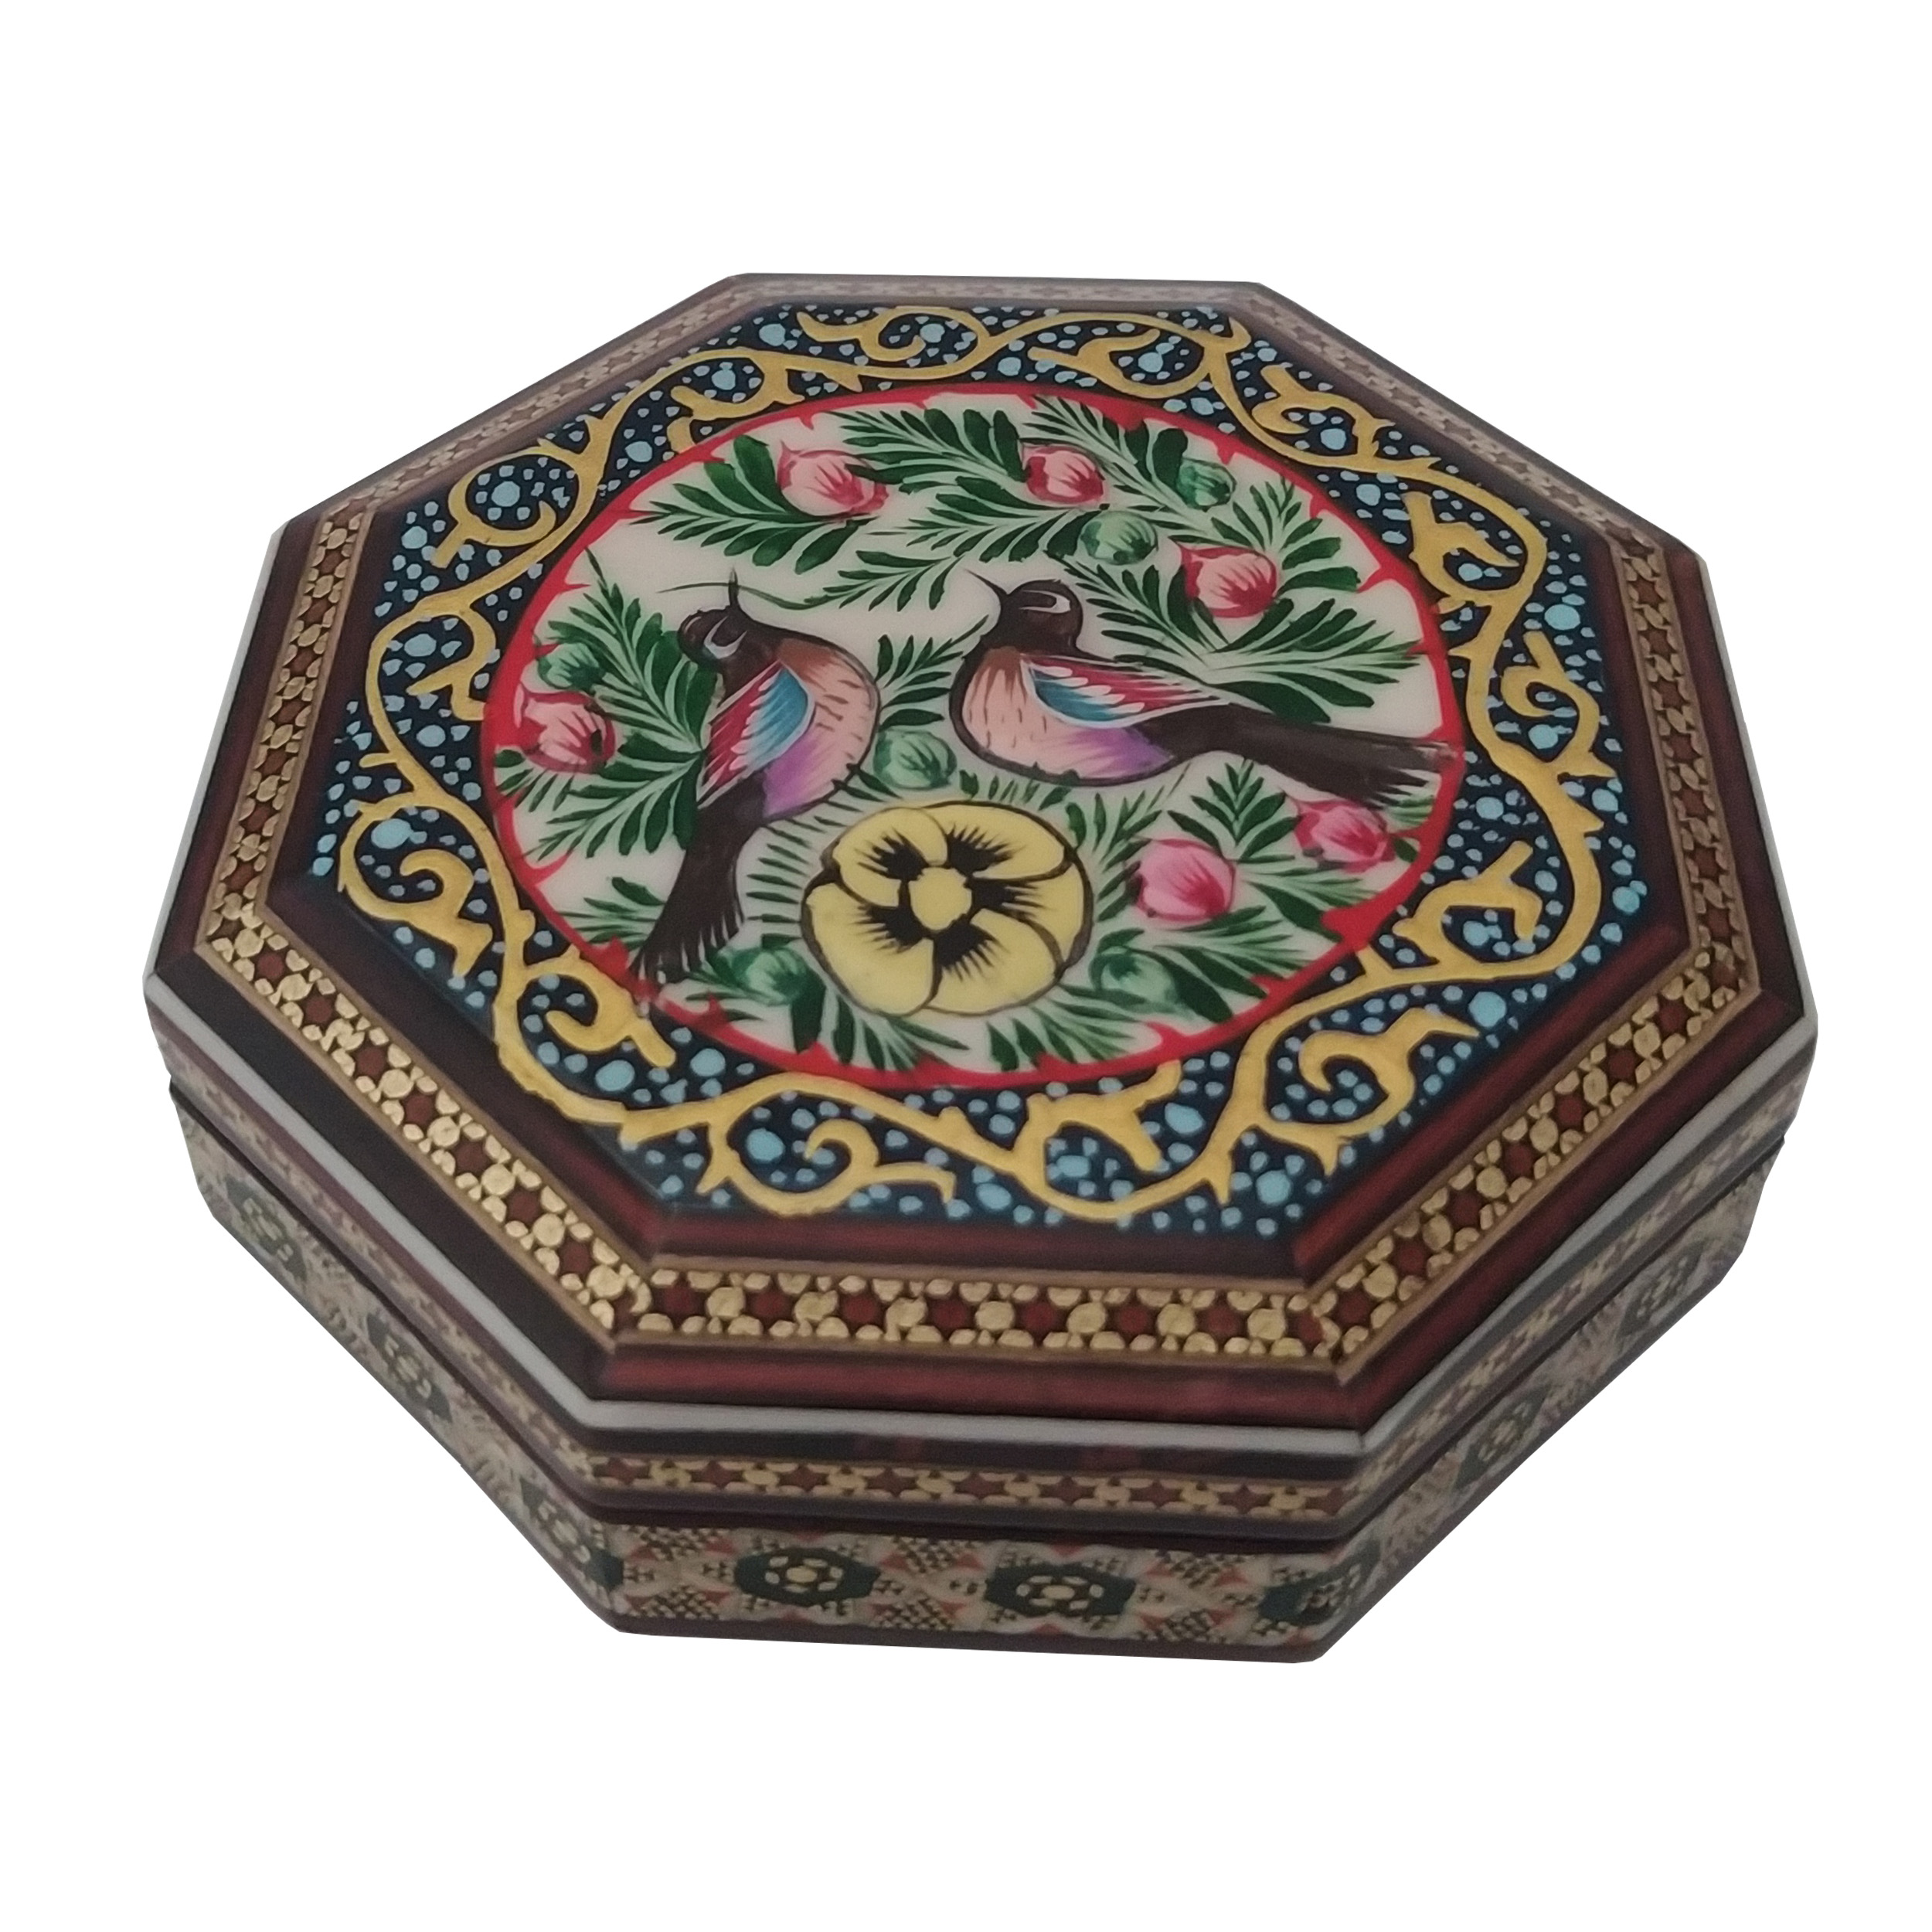 Inlay handicraft casket, BLOL-8 Model